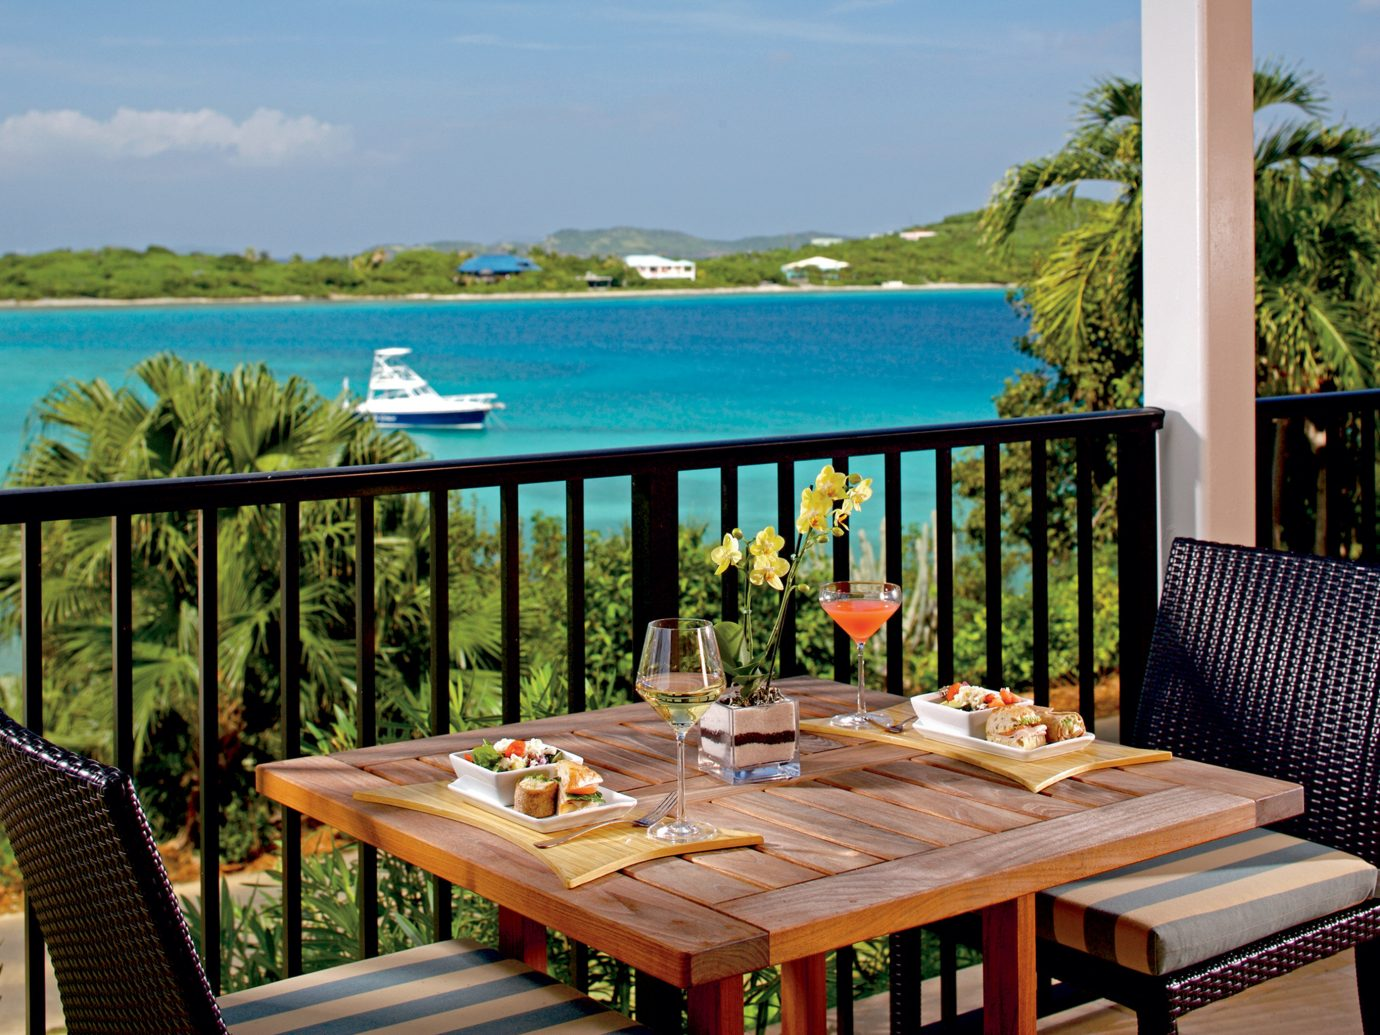 Hotels Romance table sky water outdoor leisure property Resort estate vacation Villa wooden swimming pool cottage real estate home caribbean backyard overlooking Deck